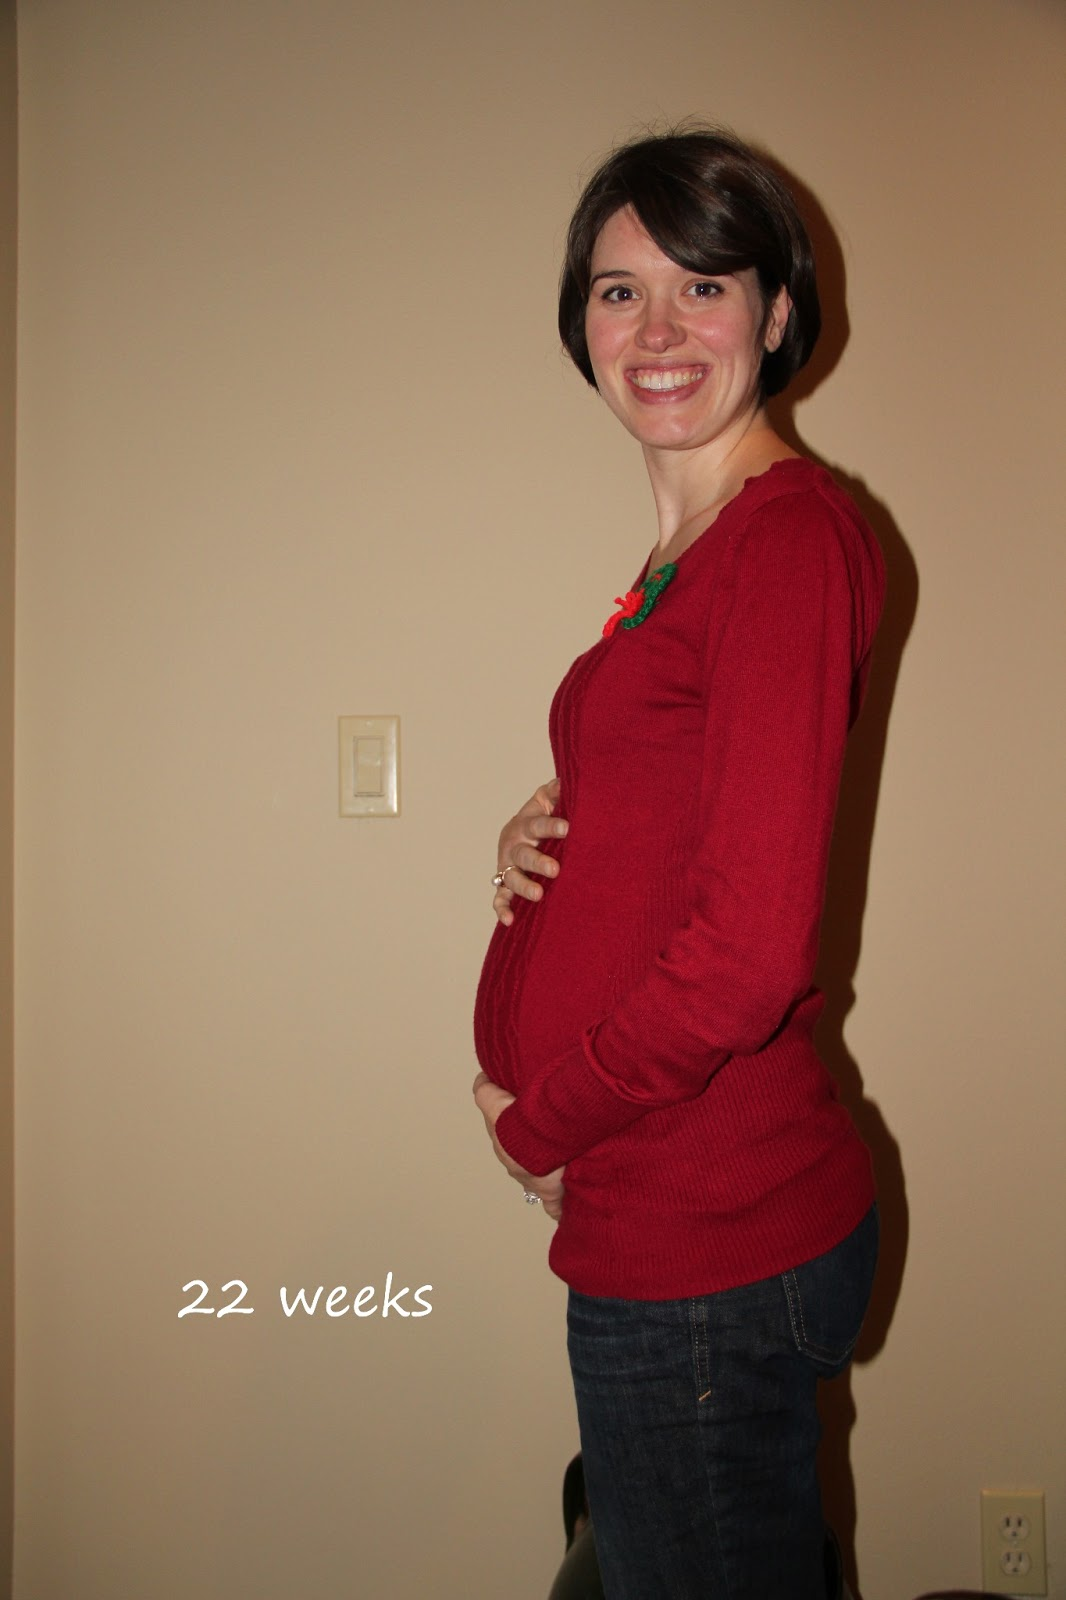 Now that 22 weeks pregnant pics couple for